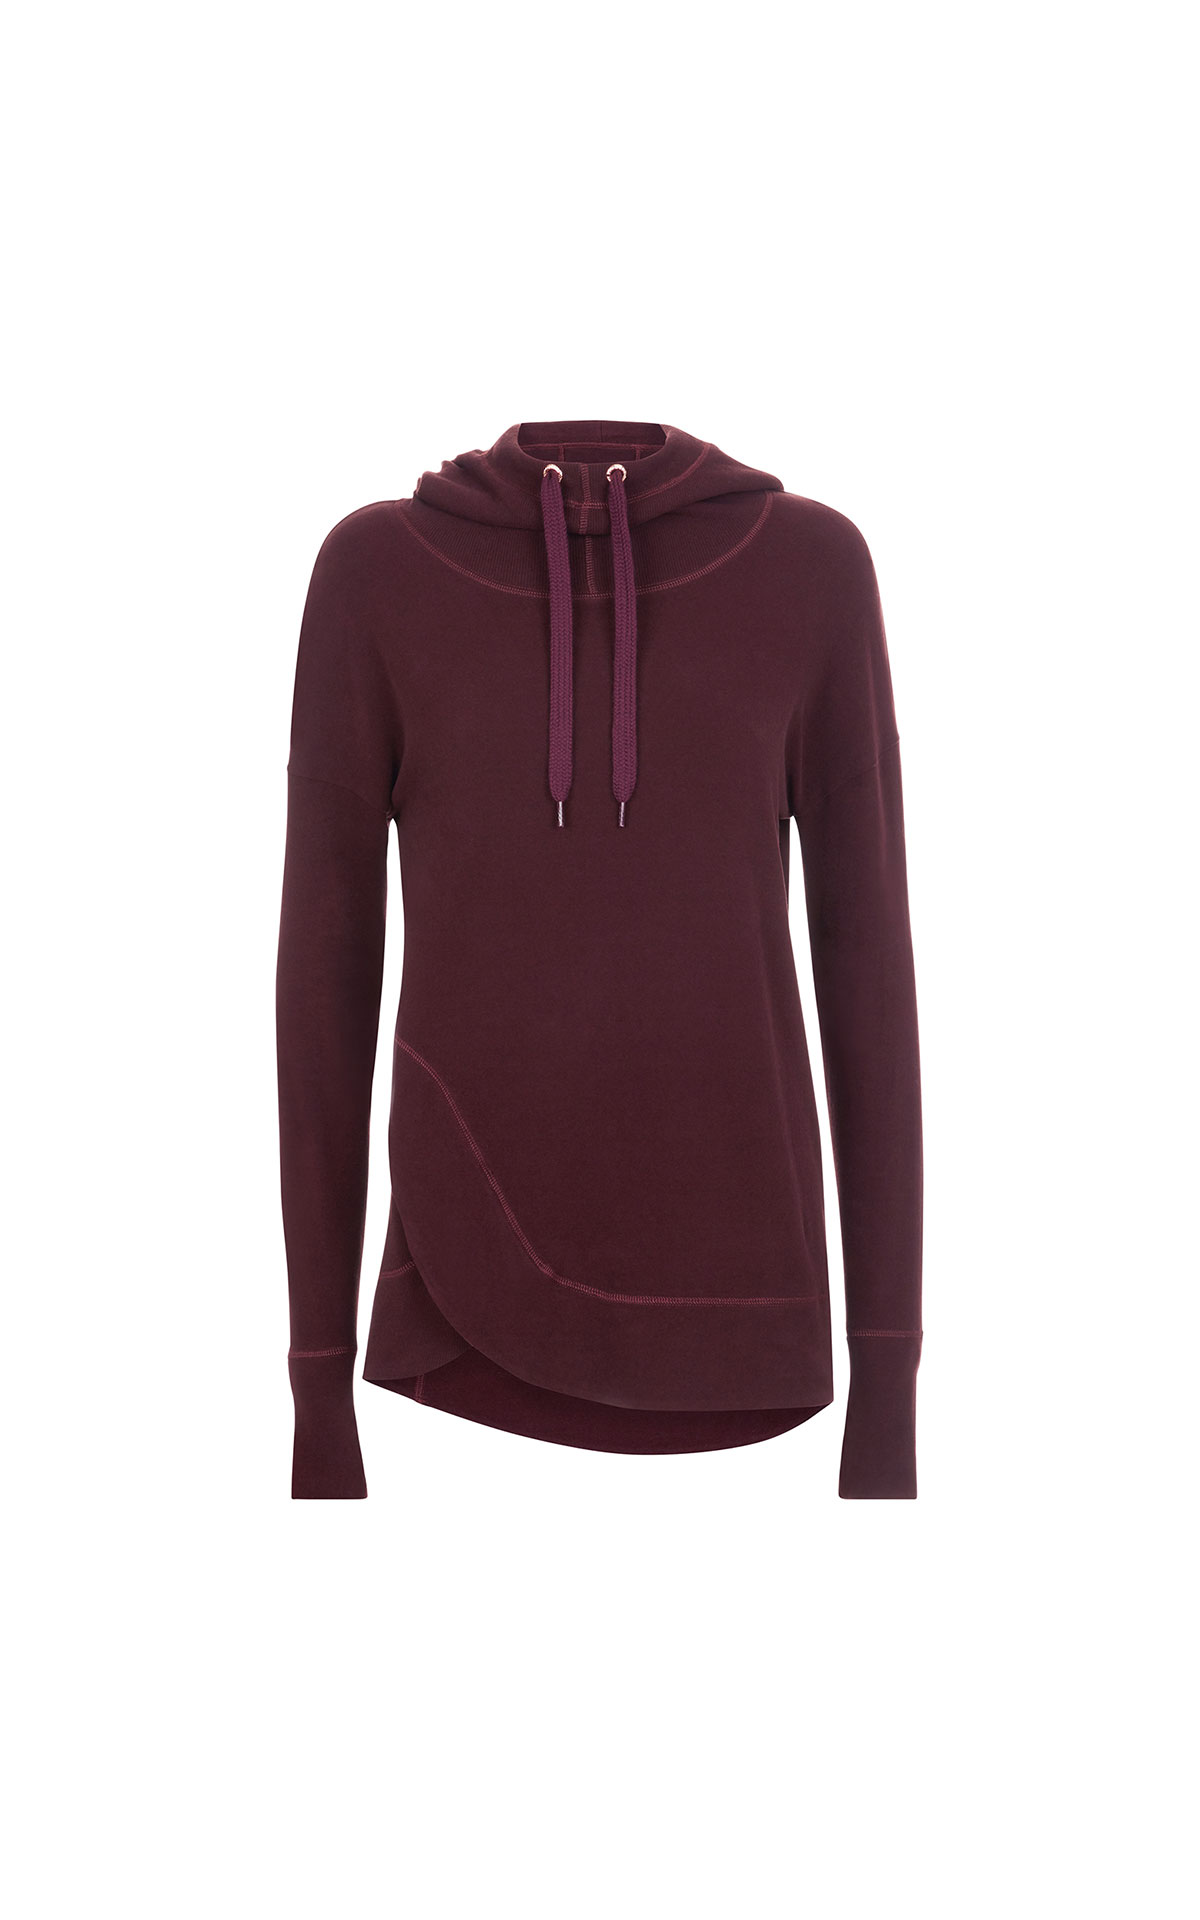 Sweaty Betty Escape luxe hoody from Bicester Village